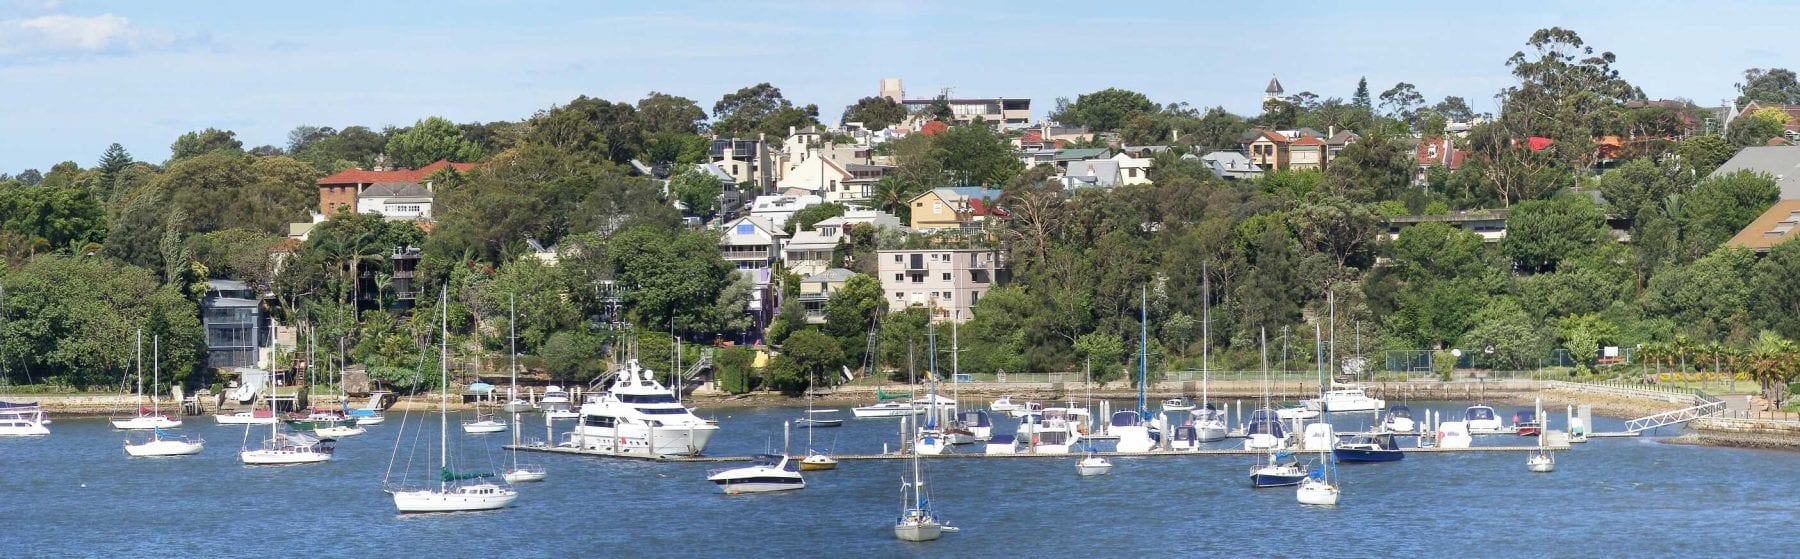 Balmain, New South Wales from Iron Cove Bridge